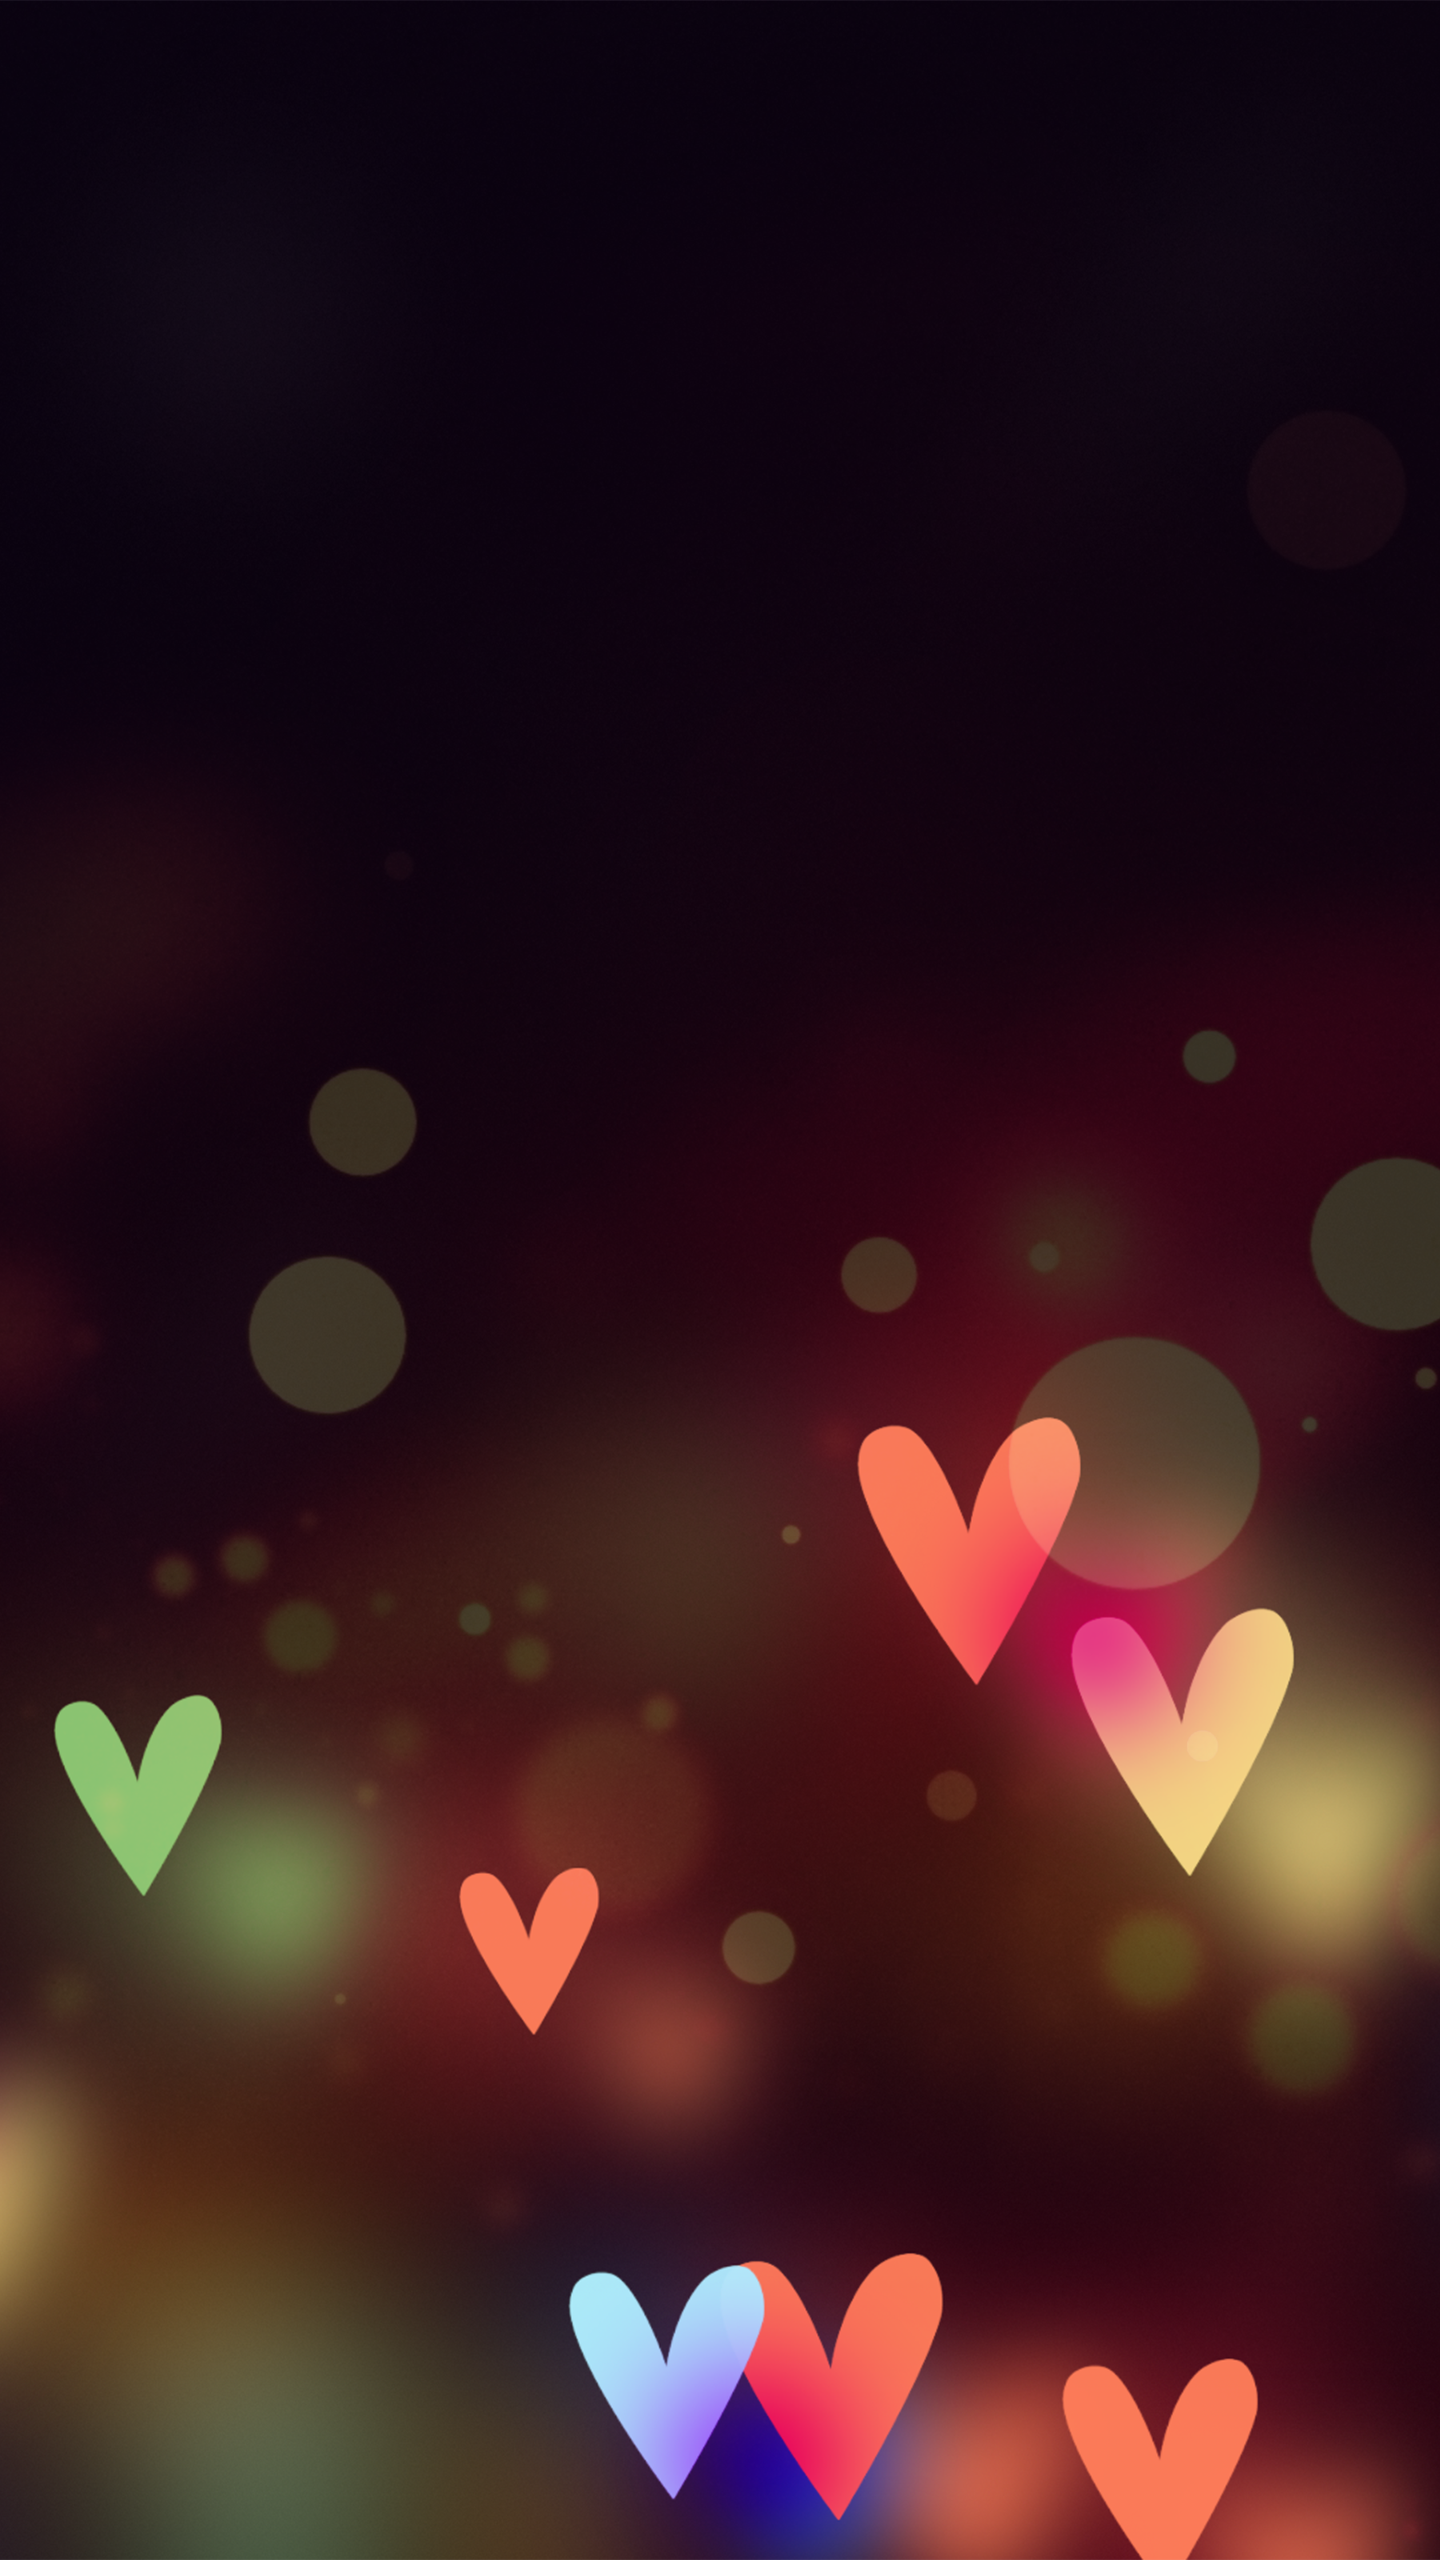 Iphone 6 Love Wallpaper : Love Wallpaper iPhone 6S Plus by lirking20 on DeviantArt